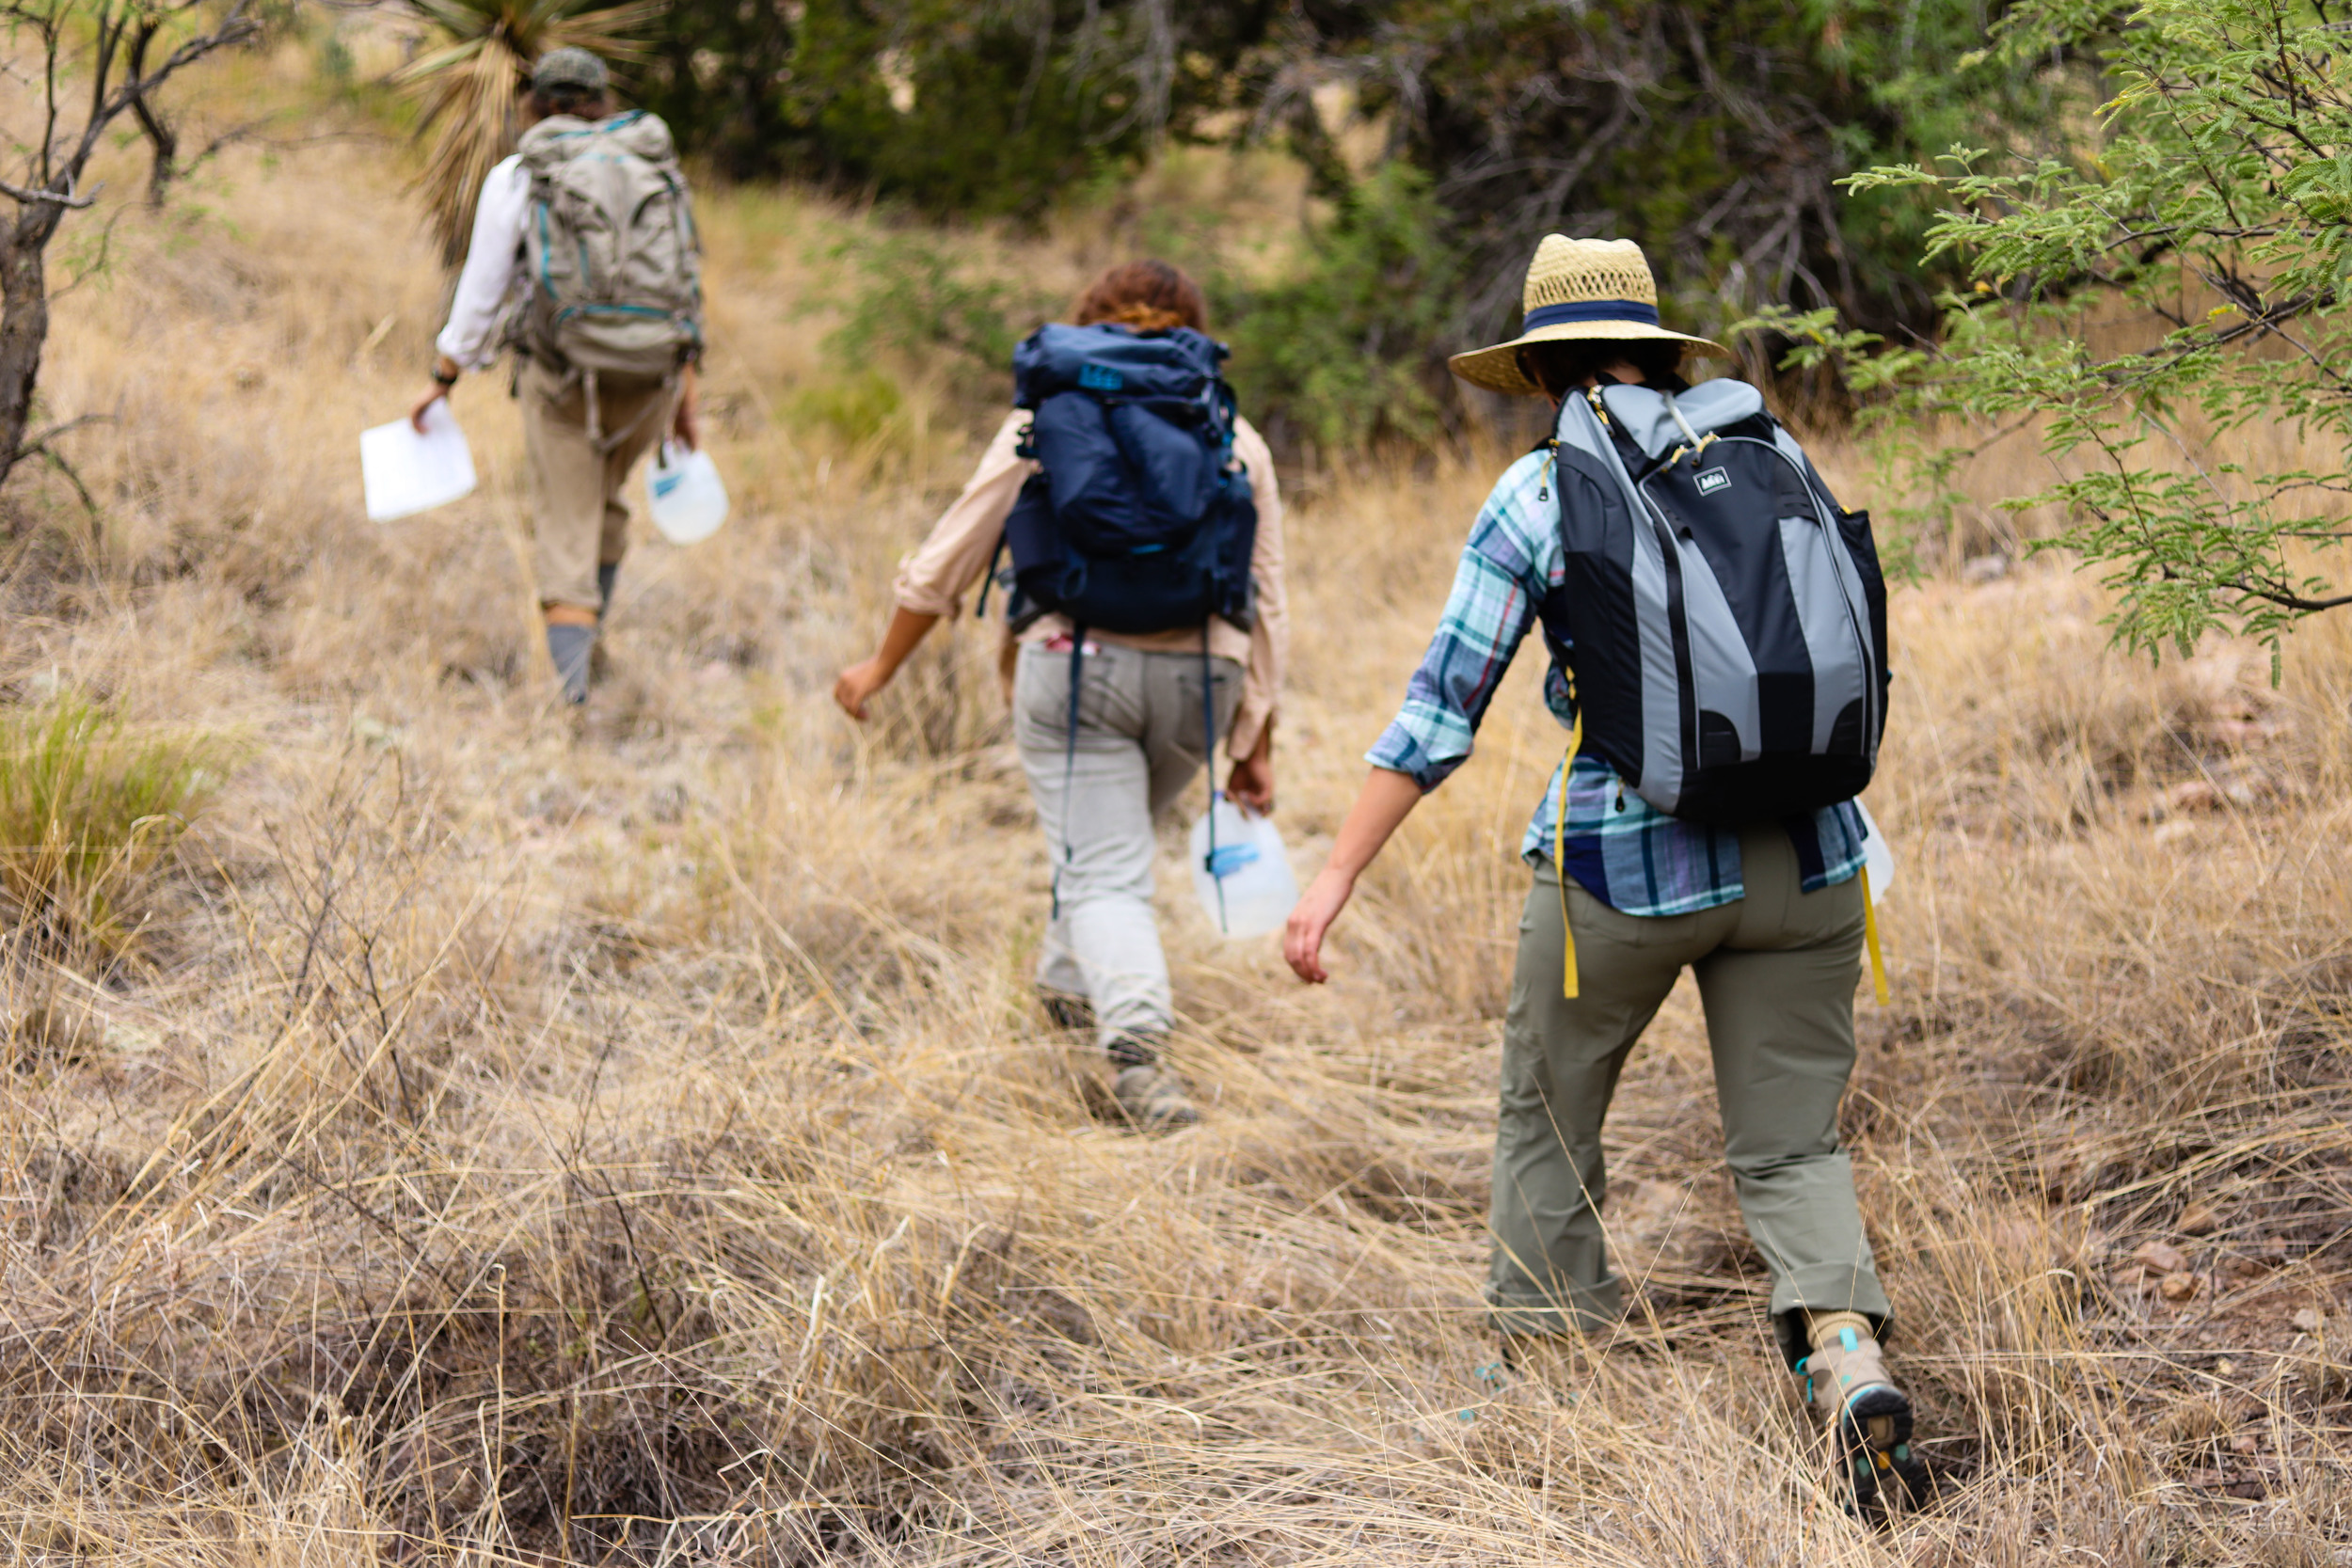 Volunteers hike, each carrying several gallons of water. A gallon of water weighs 8 pounds.